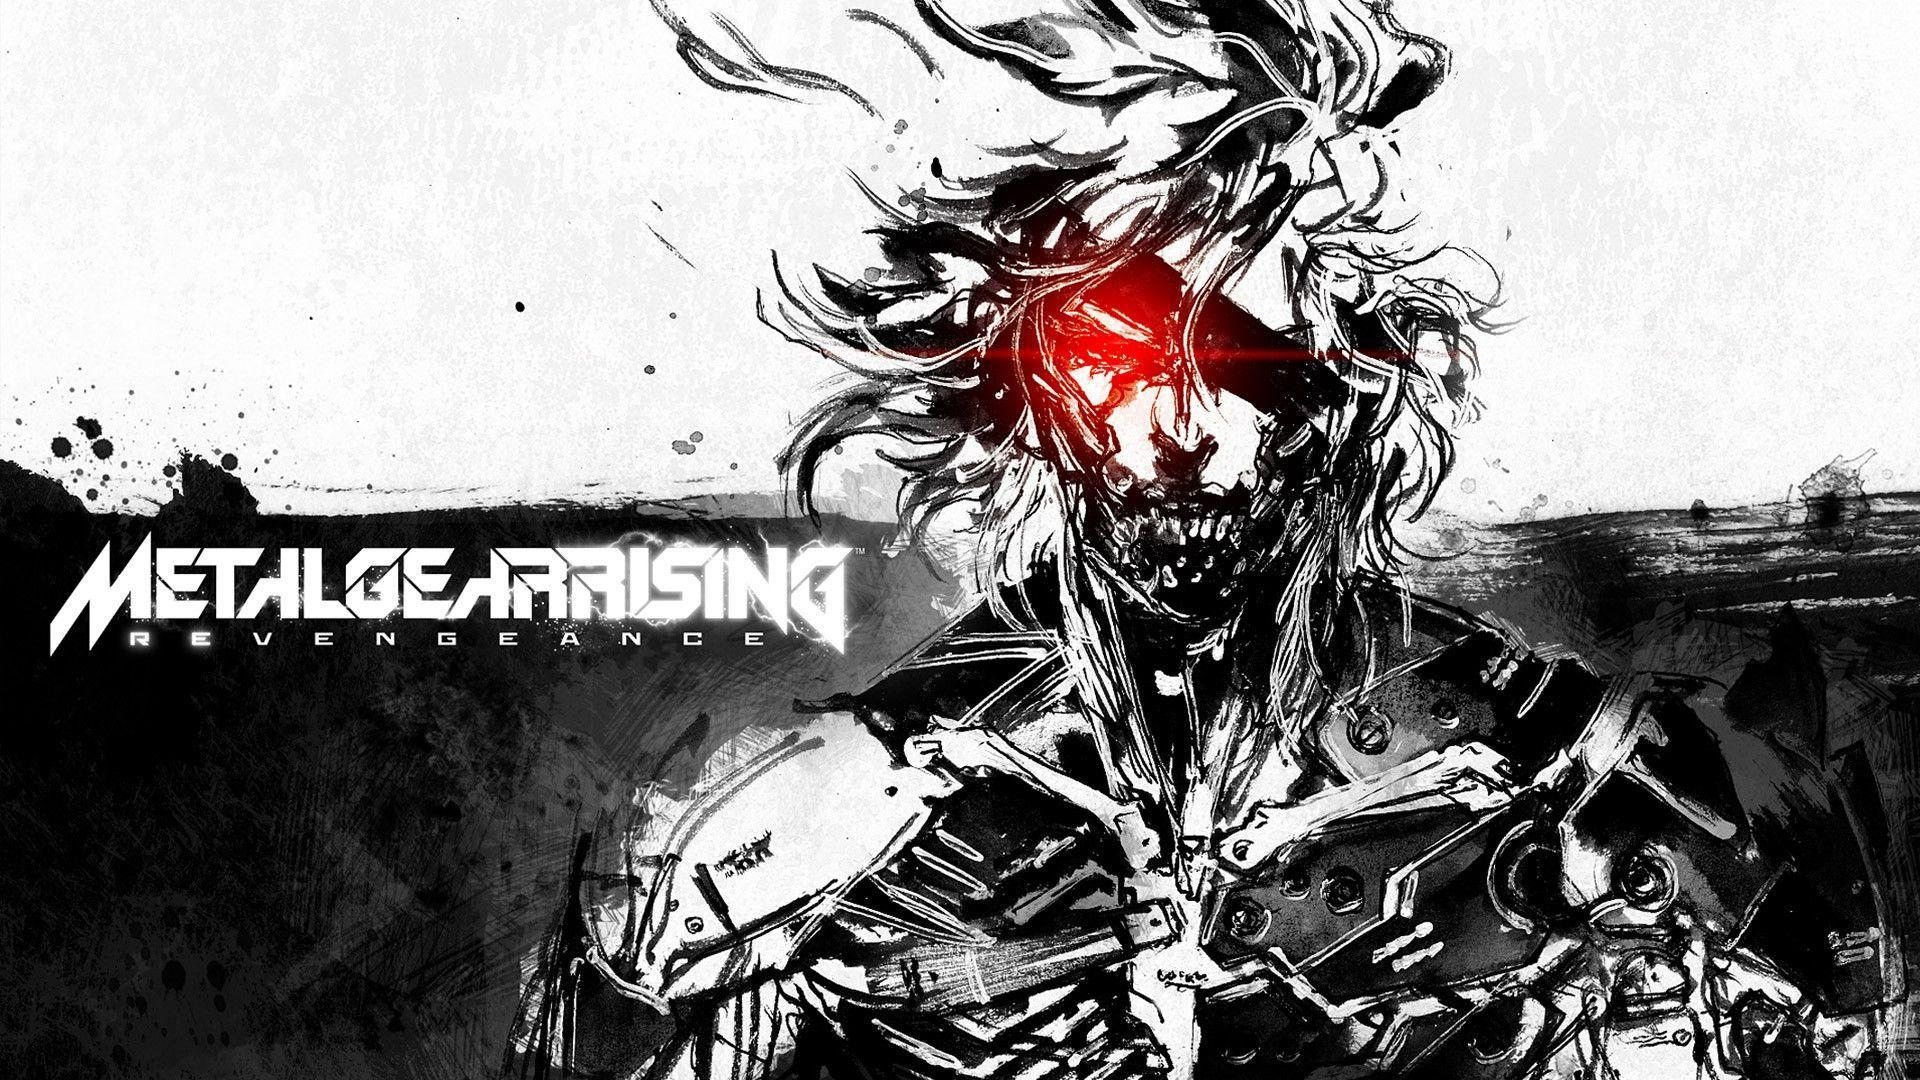 Metal gear rising wallpapers wallpaper cave 45 metal gear rising revengeance wallpapers metal gear rising voltagebd Choice Image